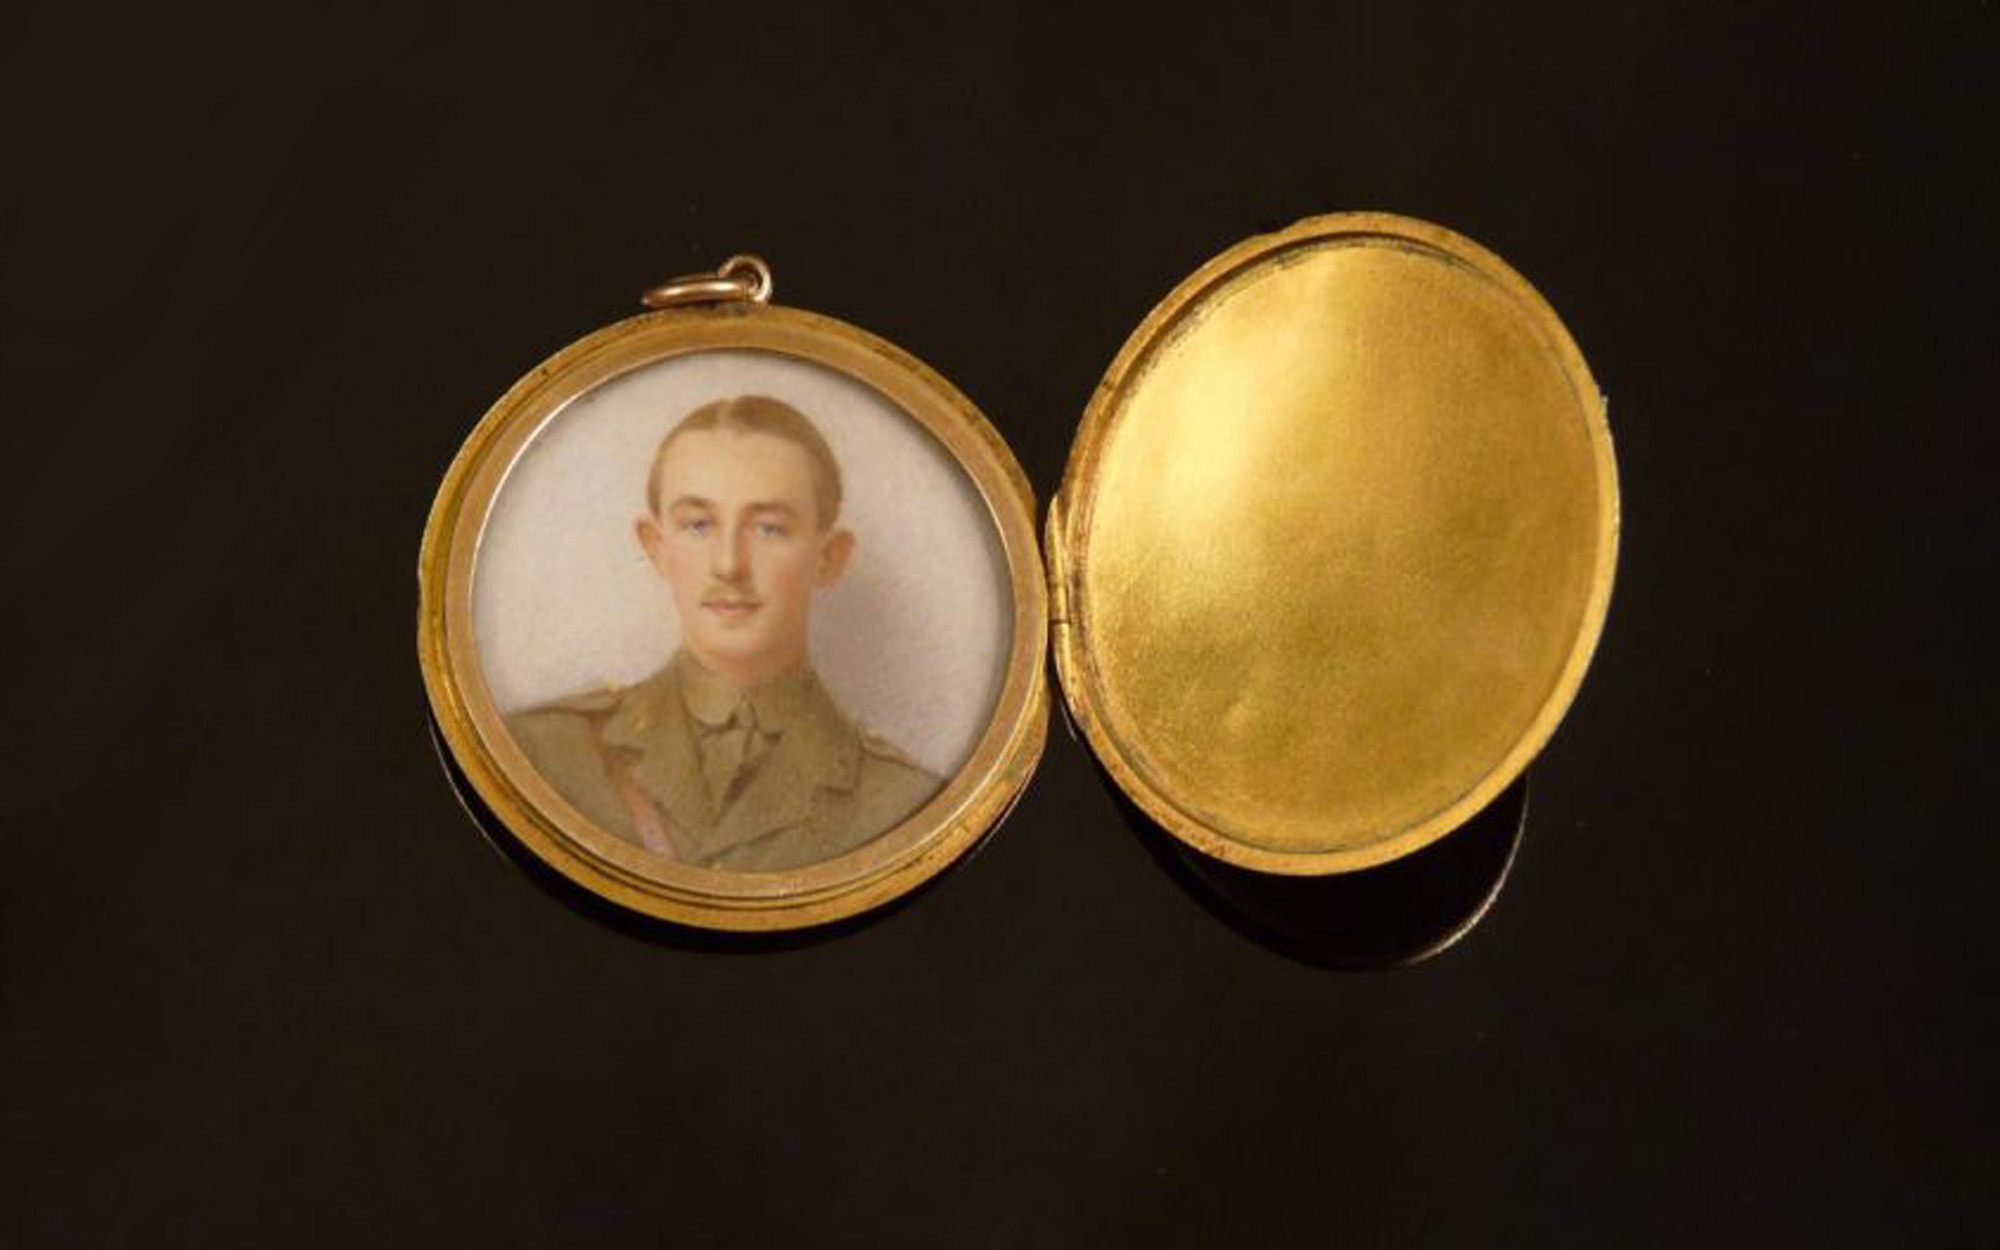 An Edwardian gold locket holding an image of Guy Vickery Pinfield of Bishops Stortford, who was commissioned as a second lieutenant into the 8th King's Royal Irish Hussars in August 1914. He was killed aged 21 in the Easter Rising in Dublin. Photograph: Sworders Fine Art Auctioneers